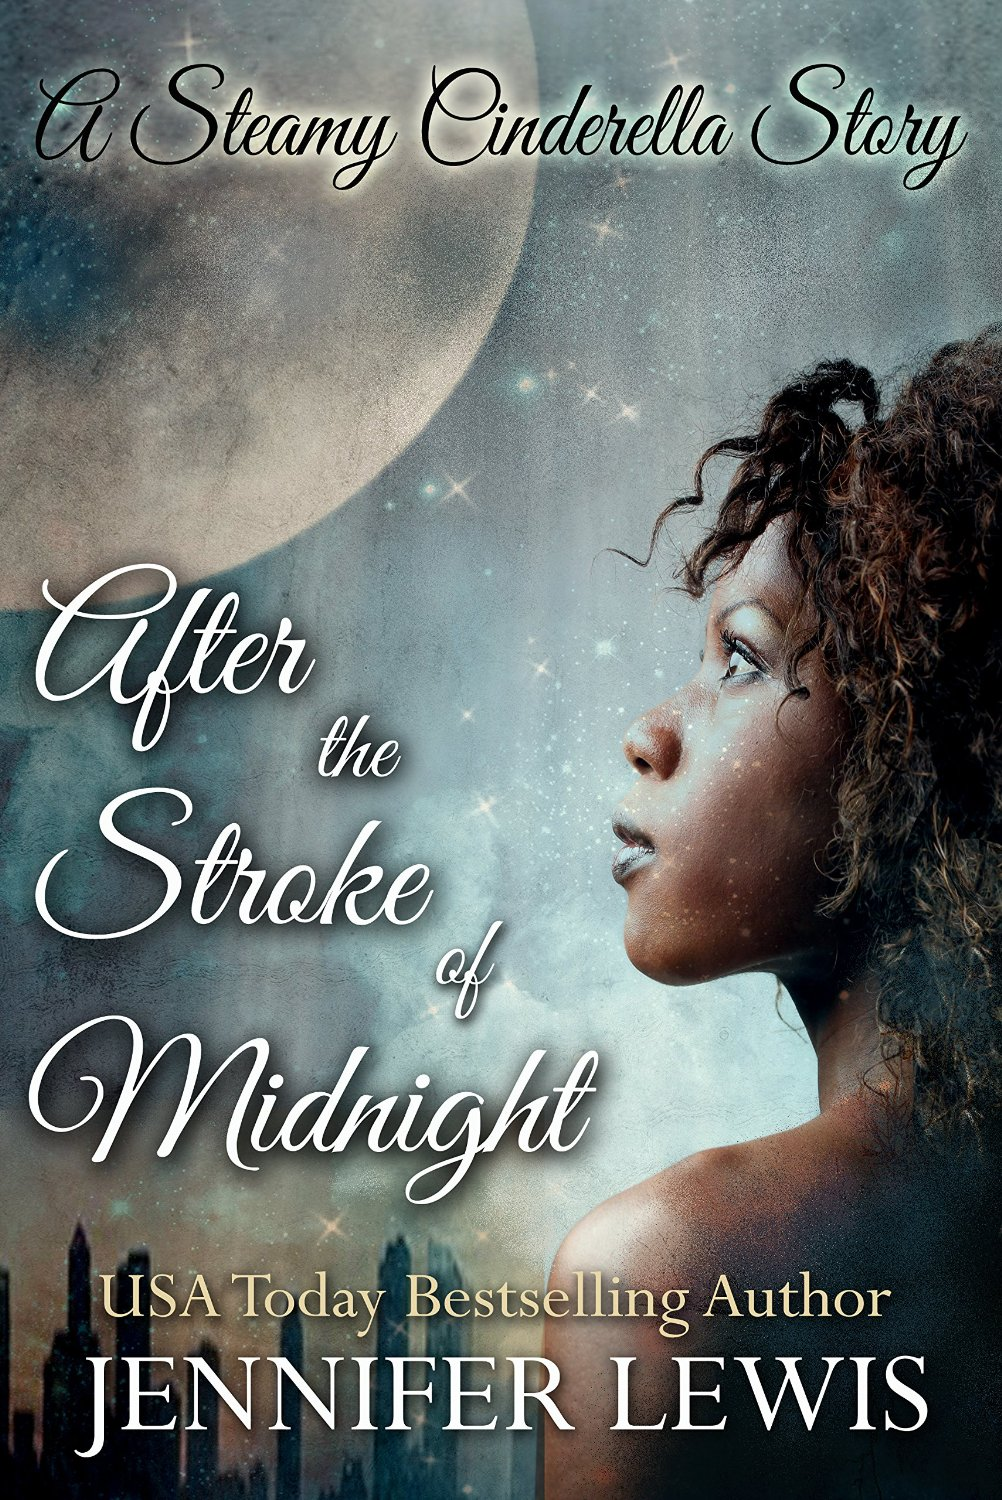 After Stroke Midnght Romance Book